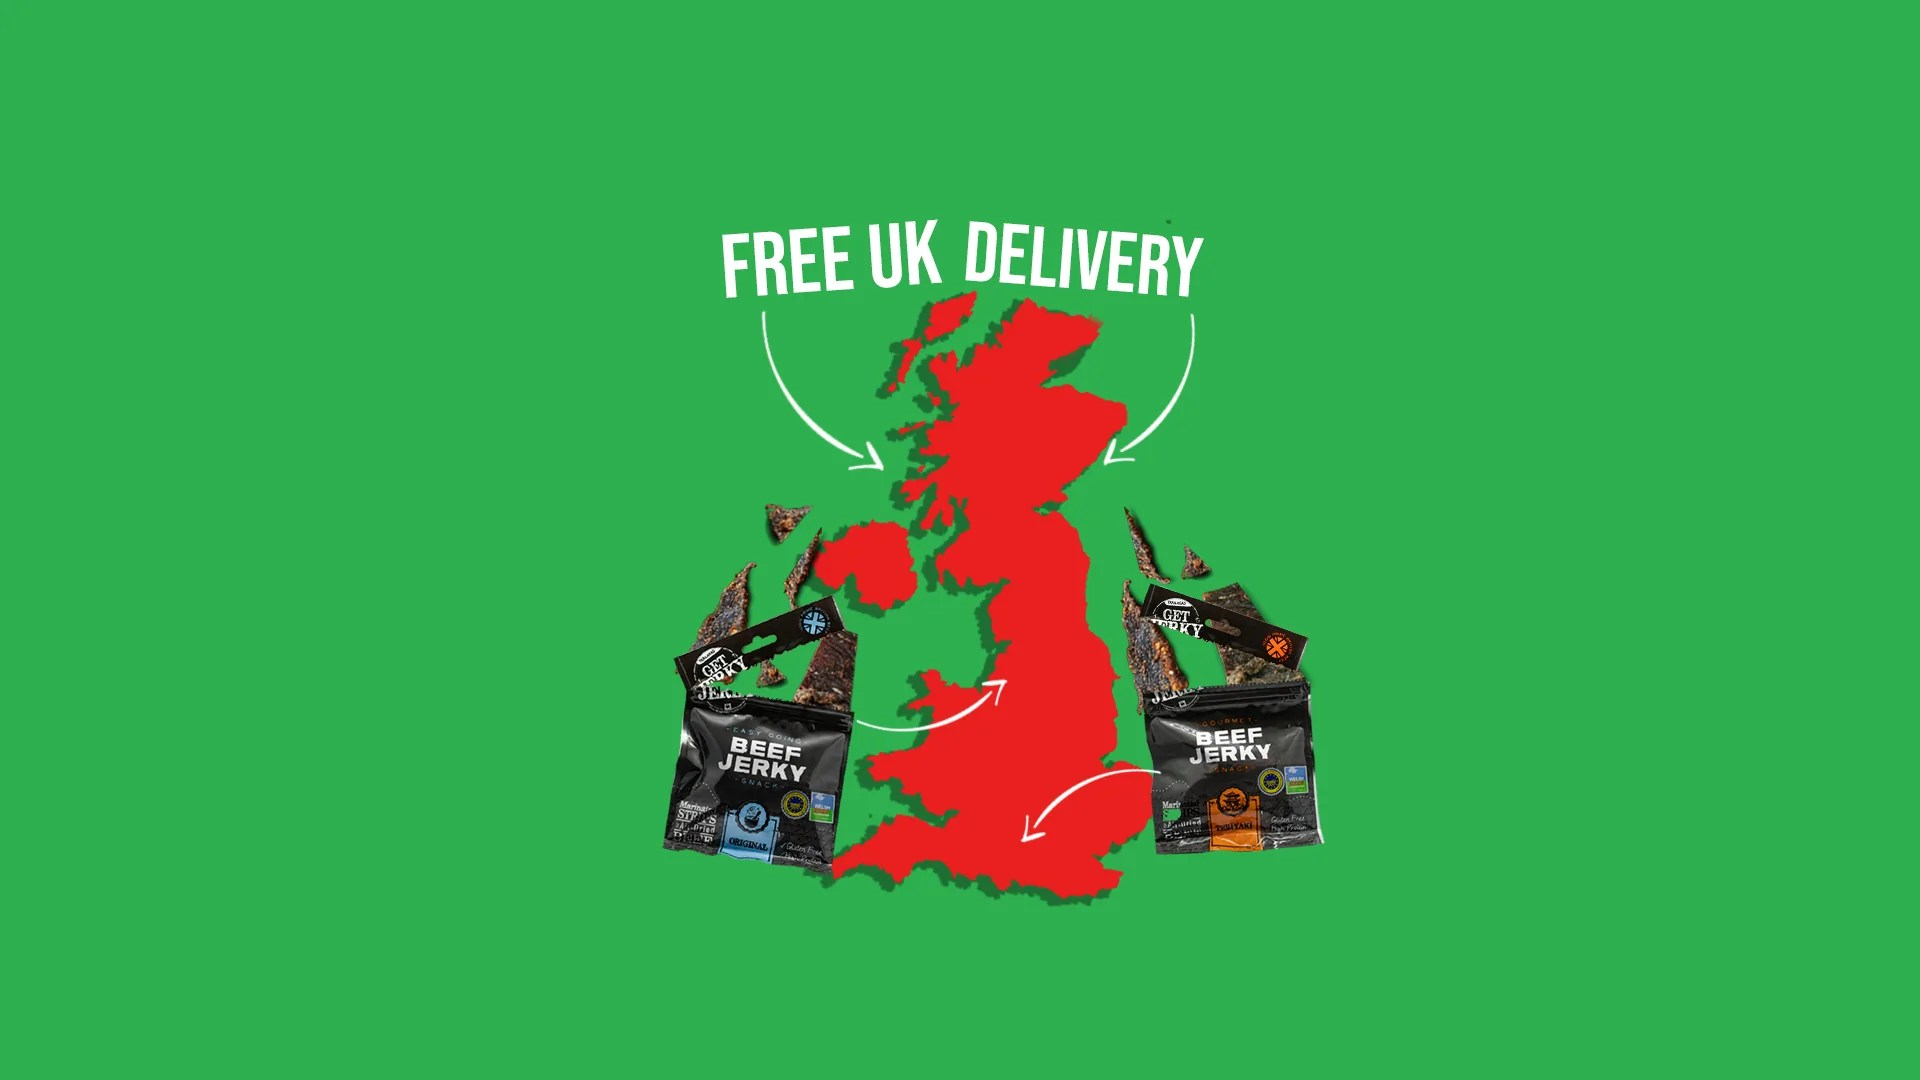 Free delivery on Welsh beef jerky